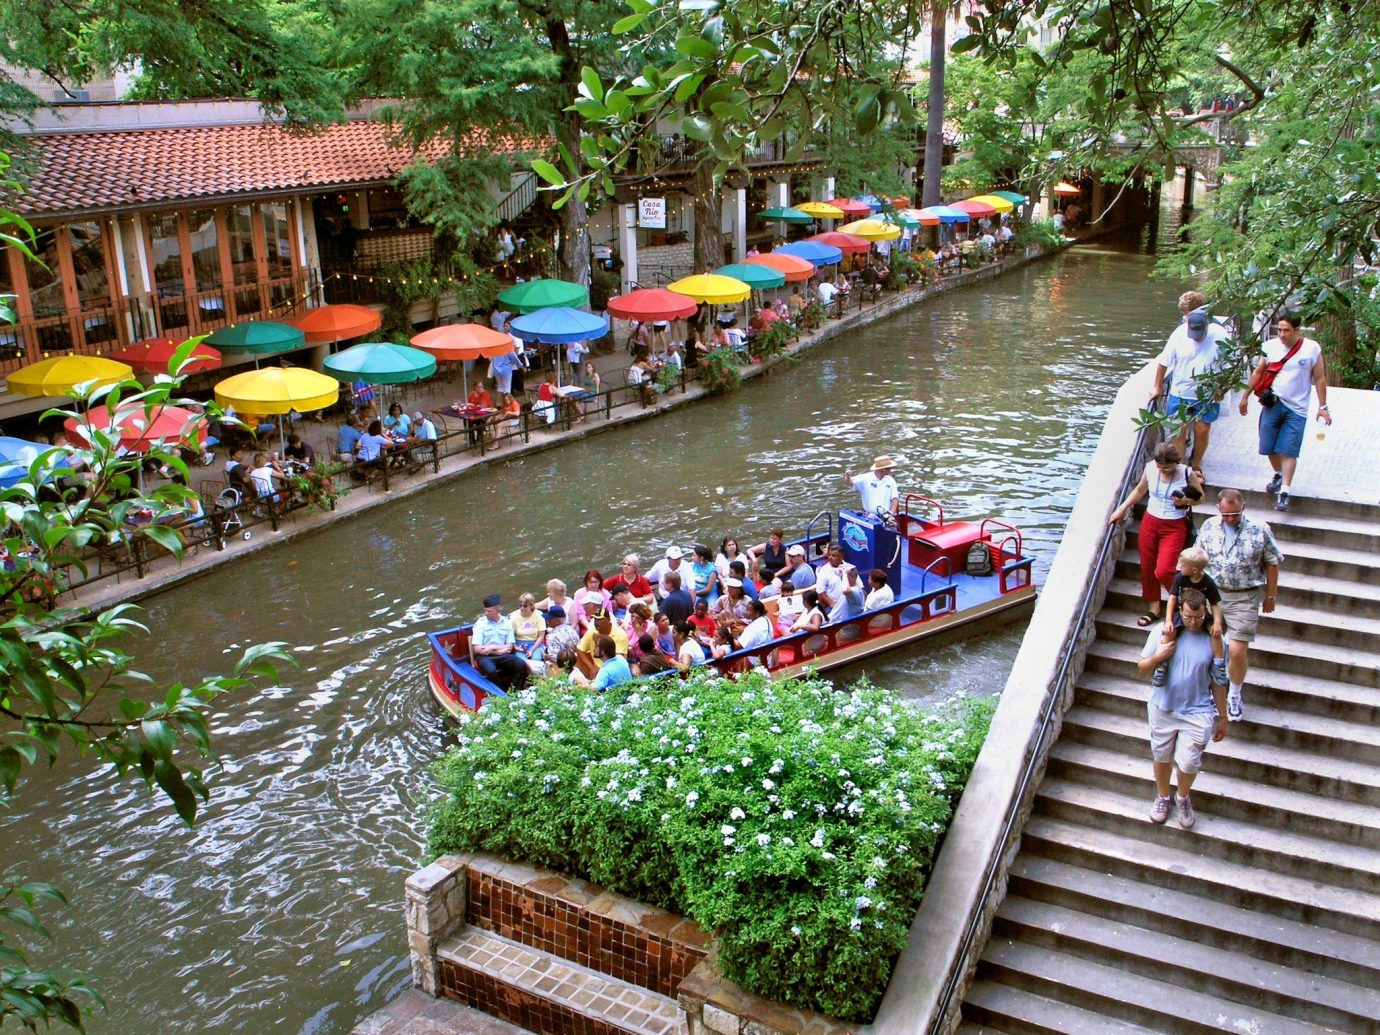 Trip Ideas tree waterway outdoor water Canal water transportation Rowing plant leisure Boat boating watercourse River watercraft rowing vehicle recreation tourism vegetable landscape City pond several